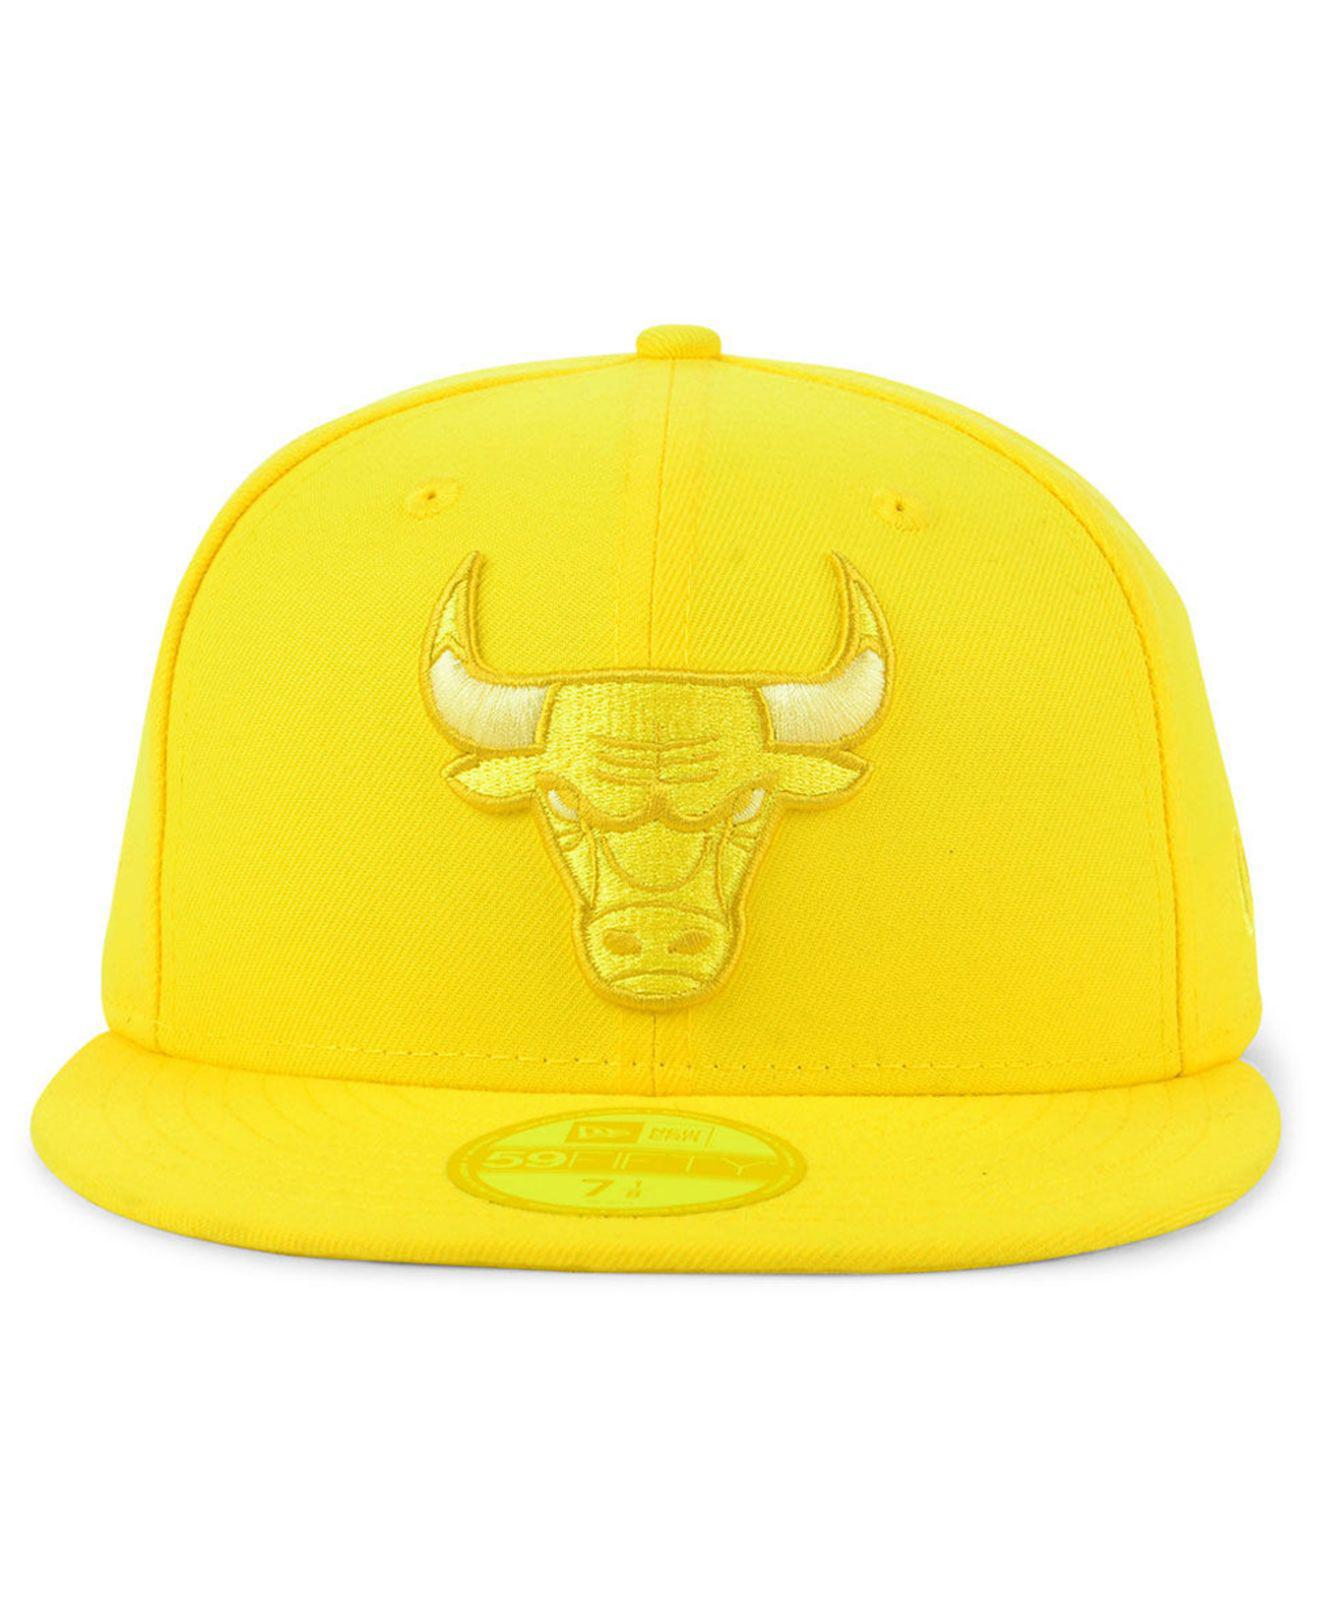 f3759229fbc Lyst - KTZ Chicago Bulls Color Prism Pack 59fifty Cap in Yellow for Men